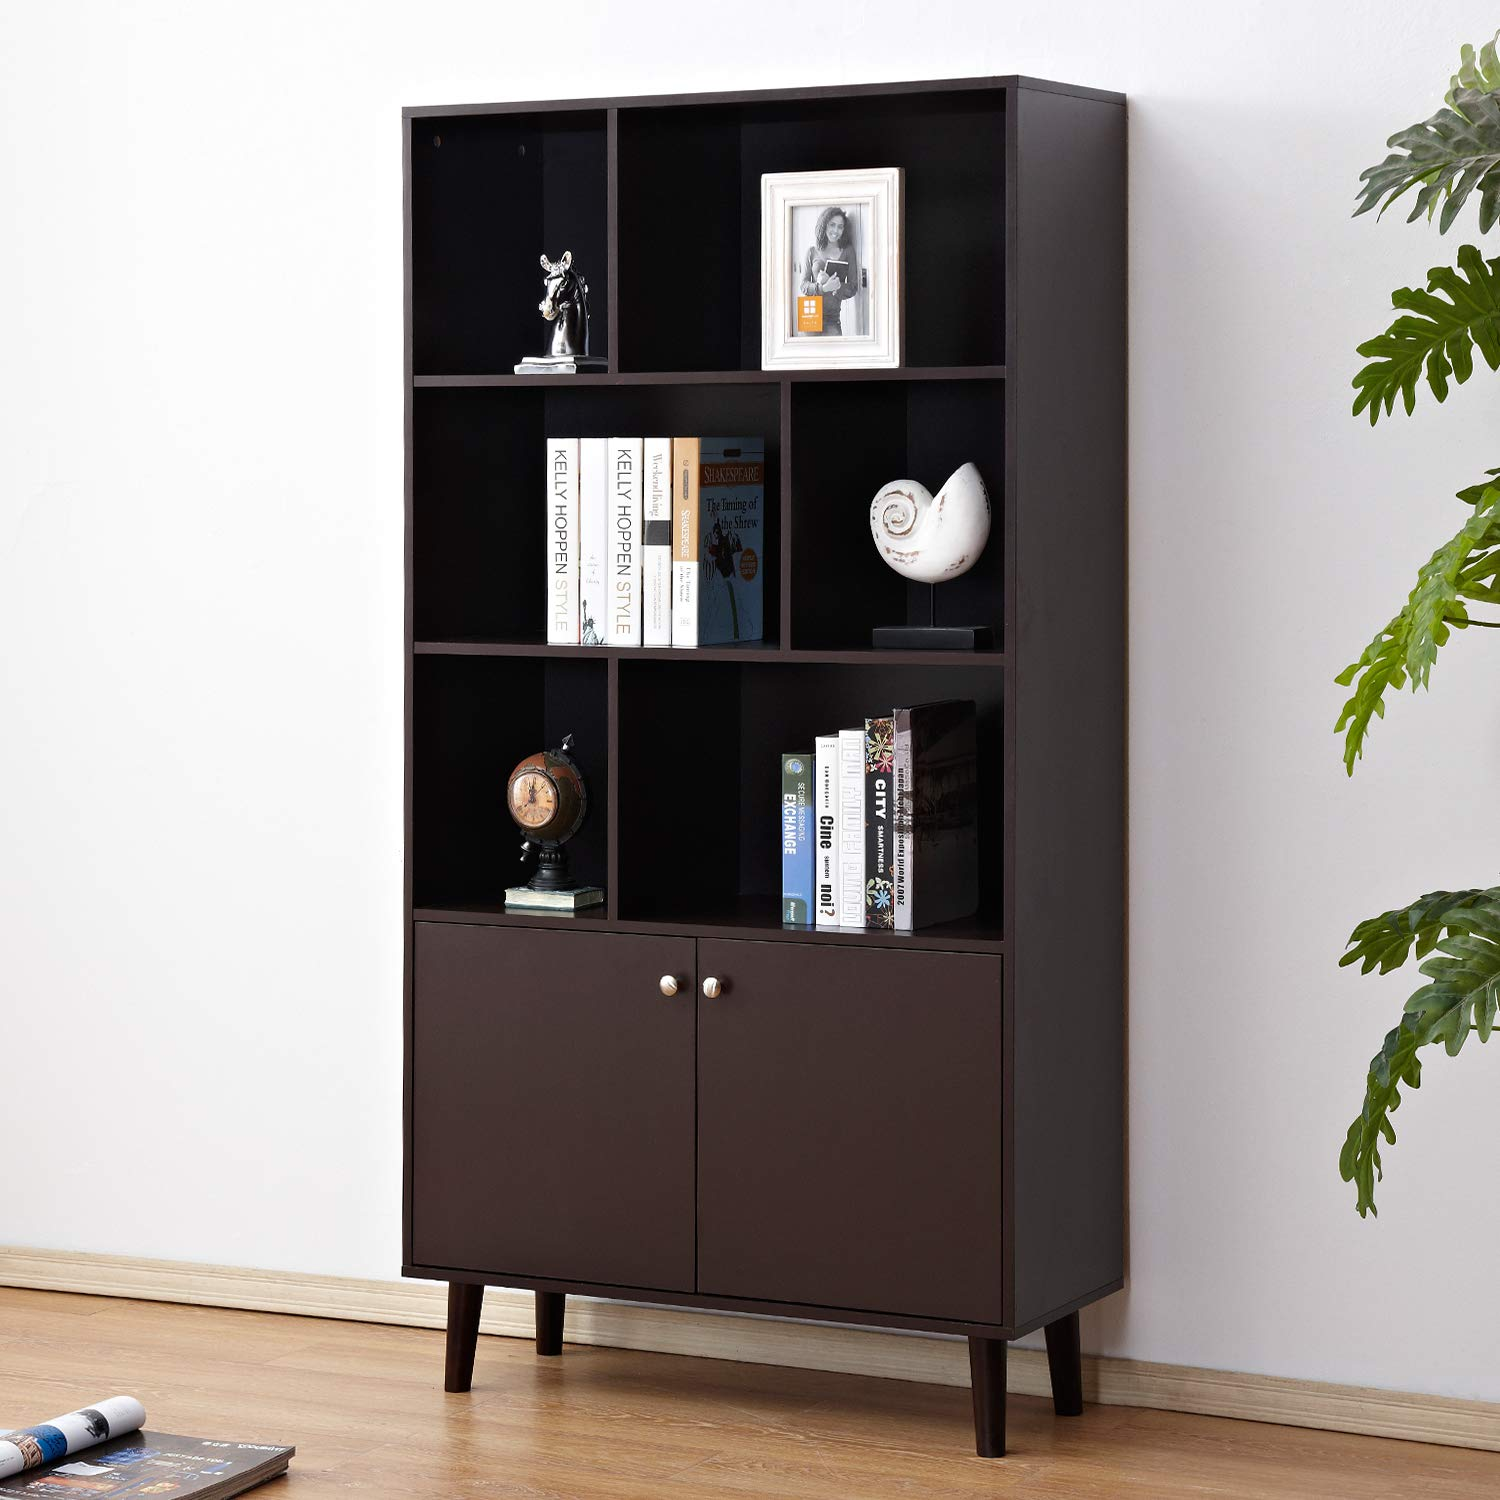 Soges Premuim Modern Display Storage Cabinet 67.4 inches High Free Standing Bookshelf Wood Home Office Cabinet, Espresso HHGZ006-CF by soges